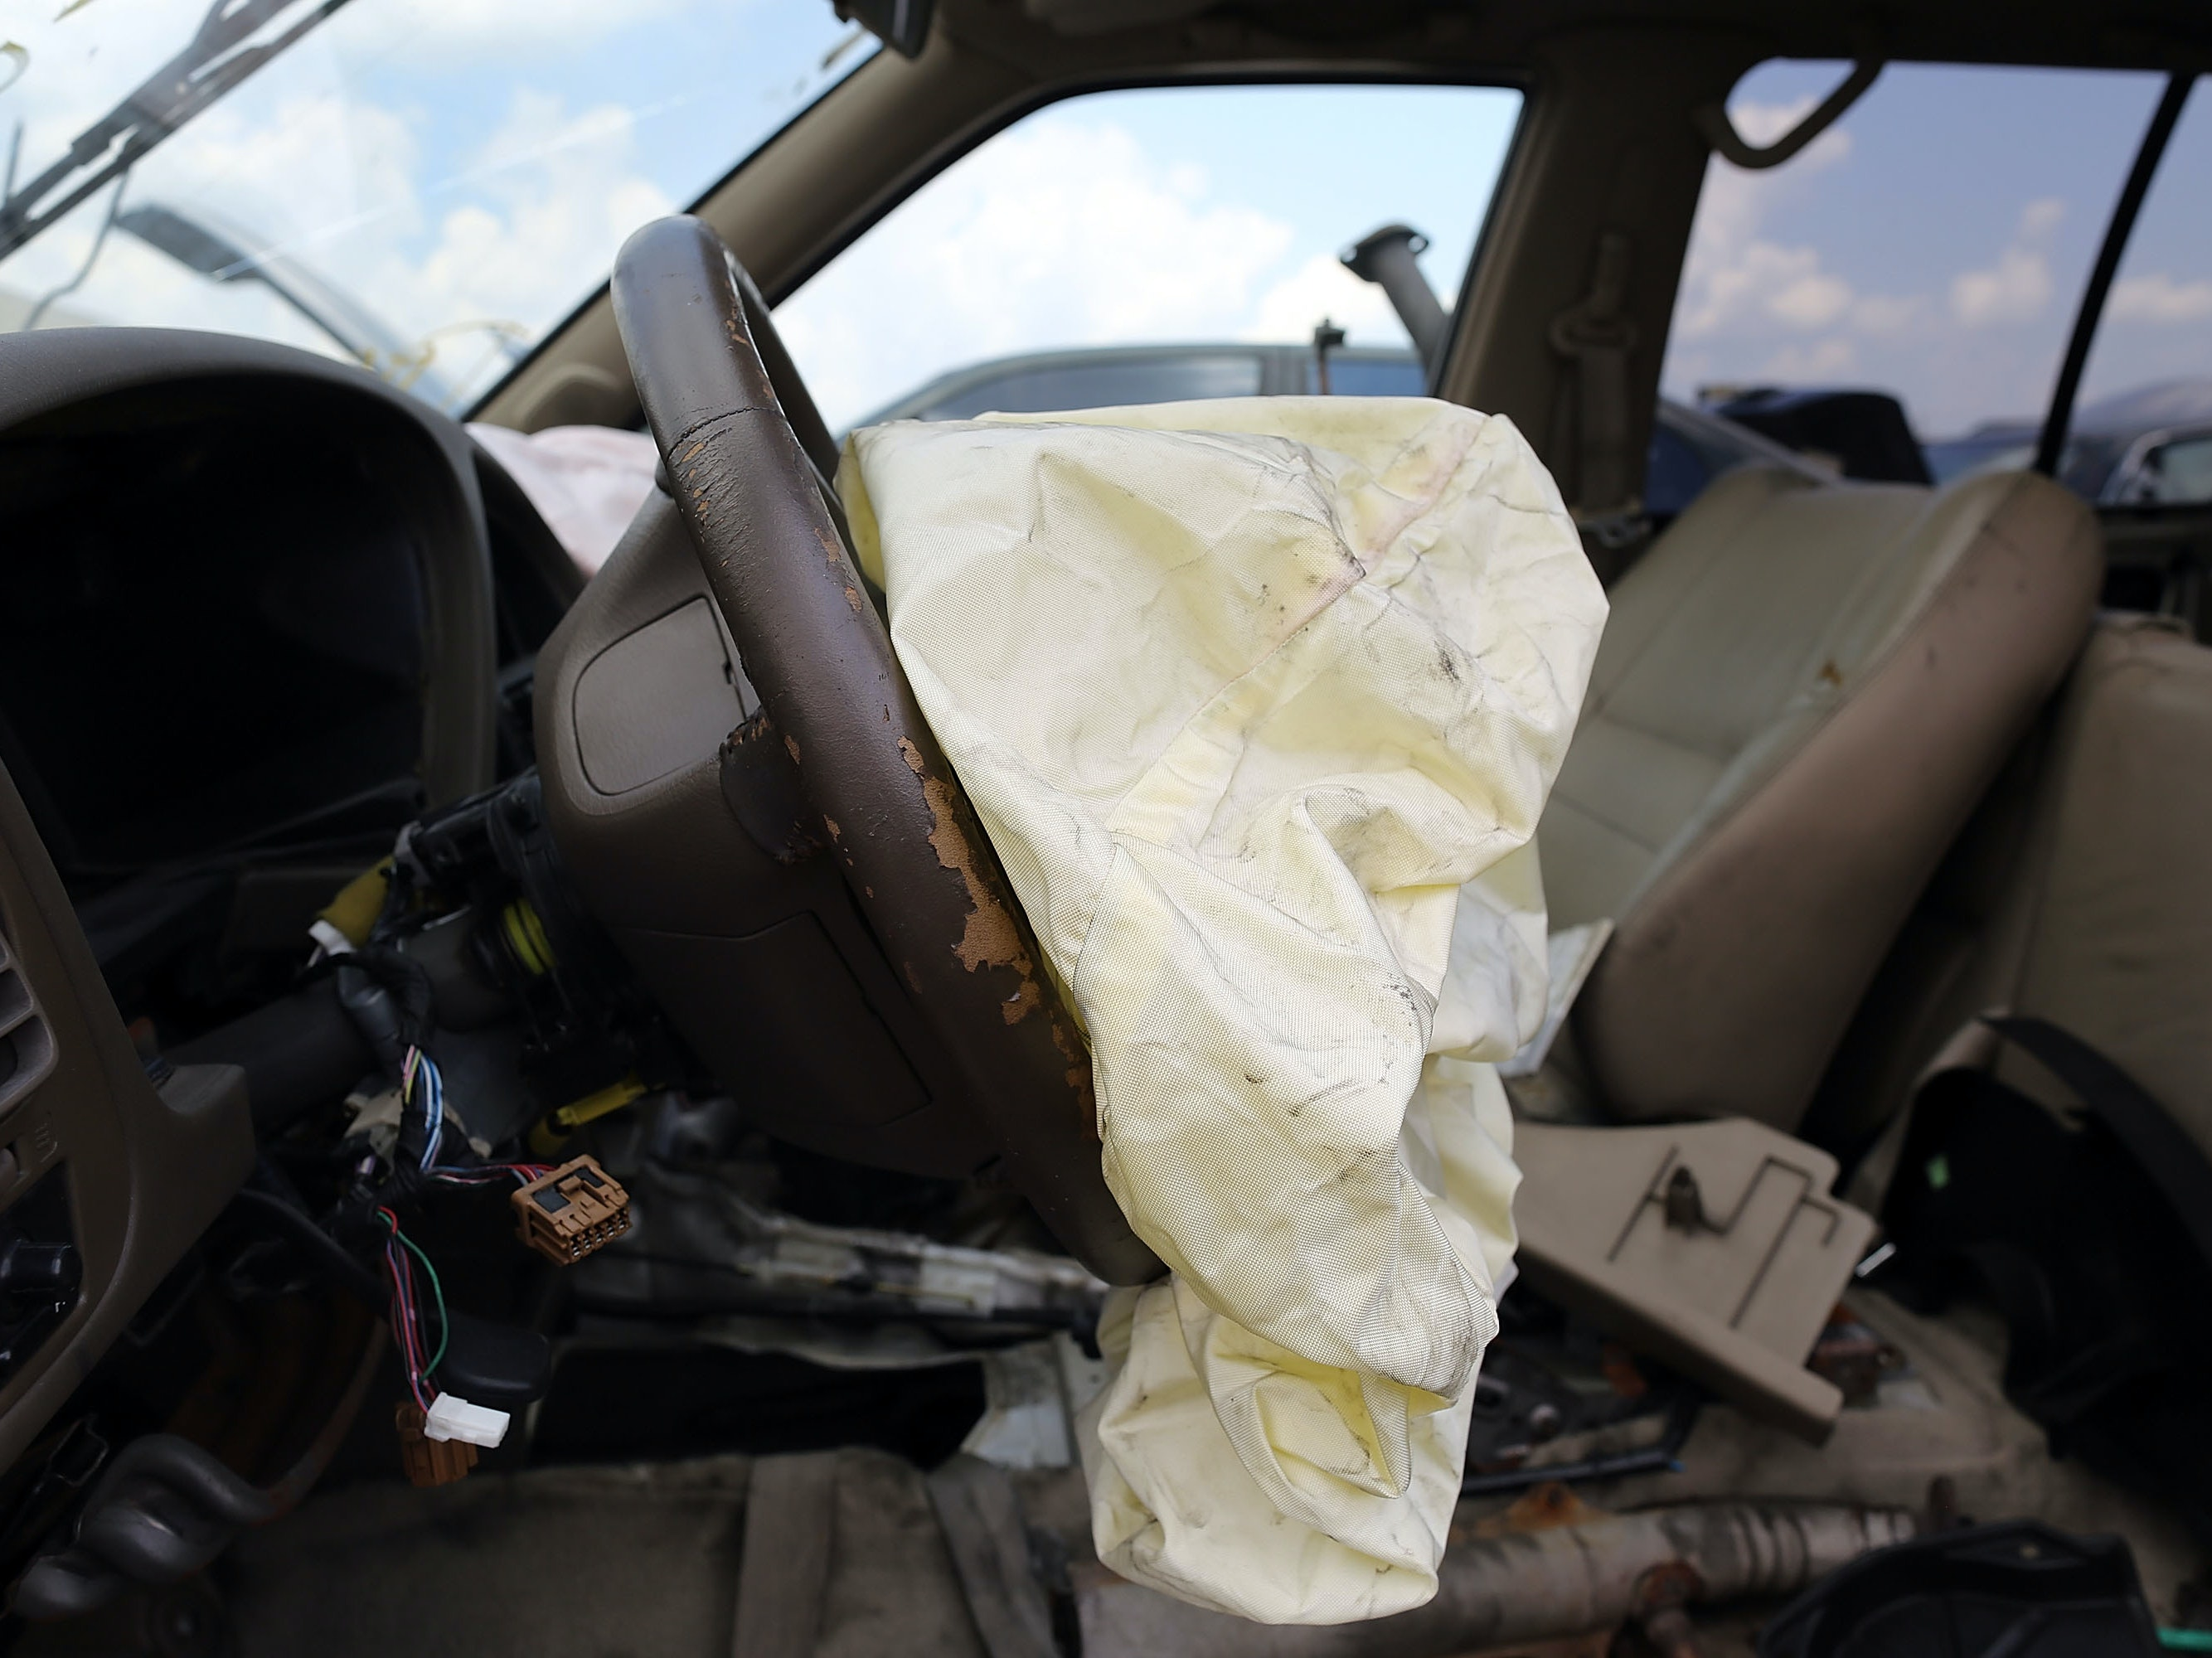 How Much Money Does Takata Owe for Its Dangerous Airbag Inflator Recall?